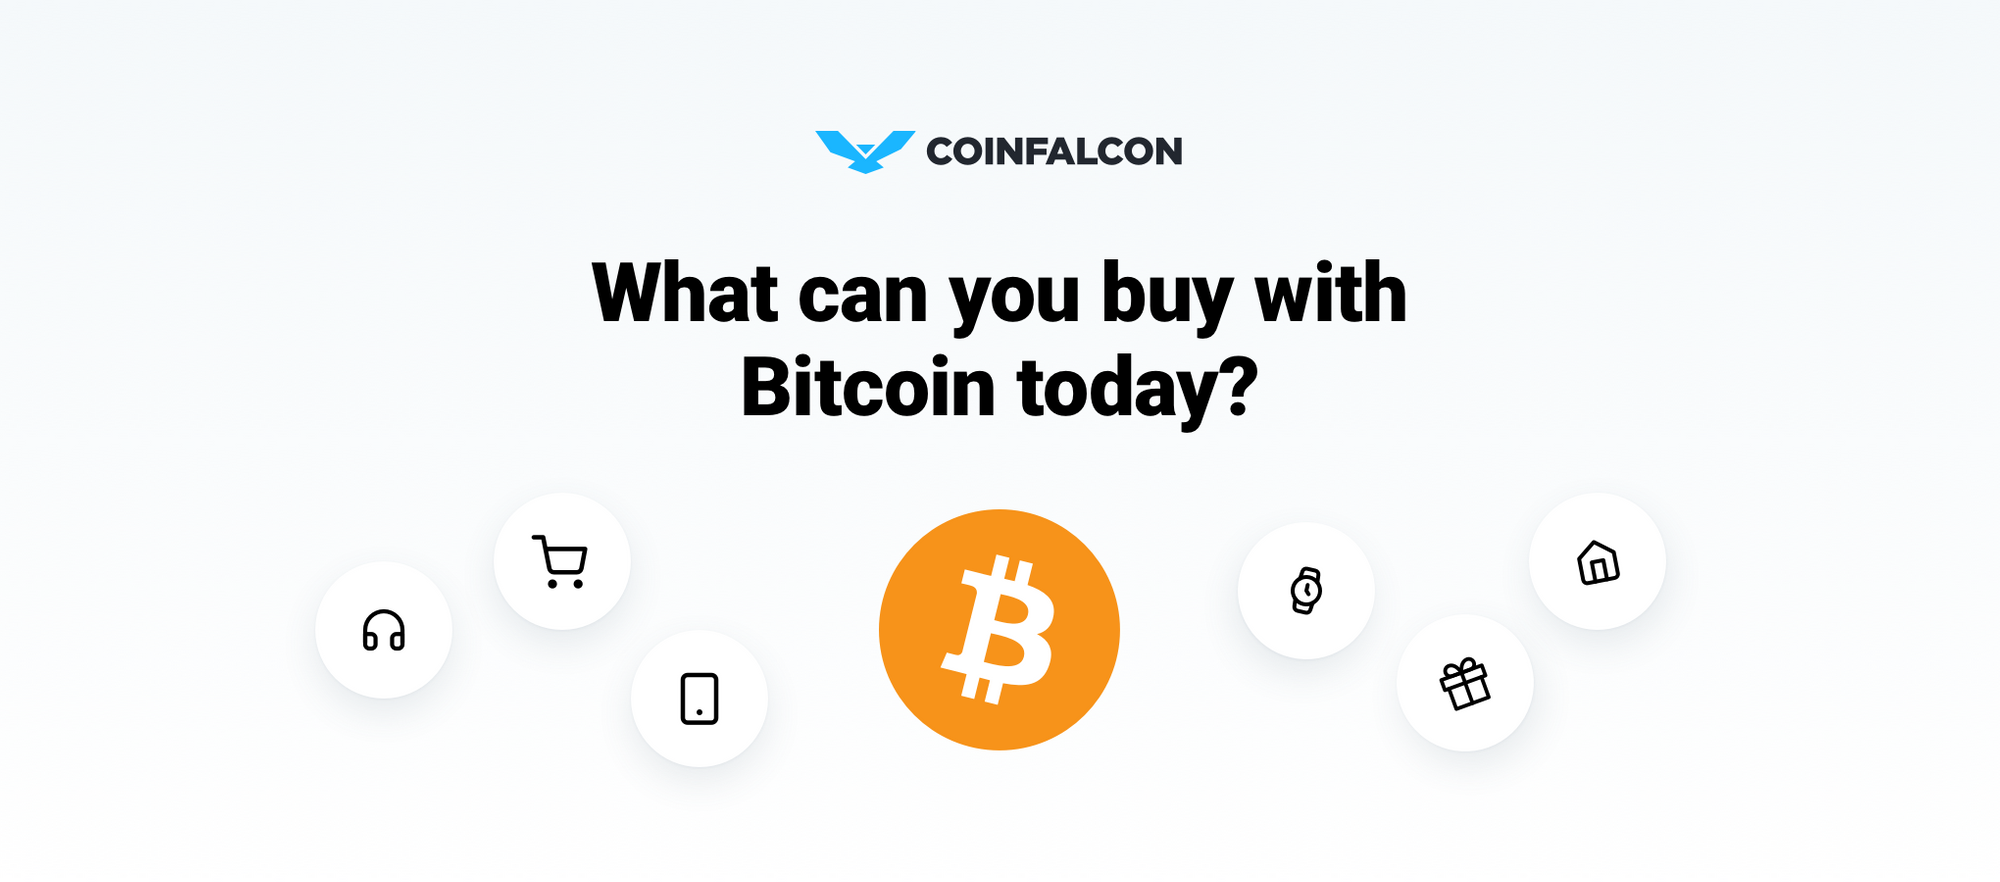 What Can You Buy with Bitcoin Today?